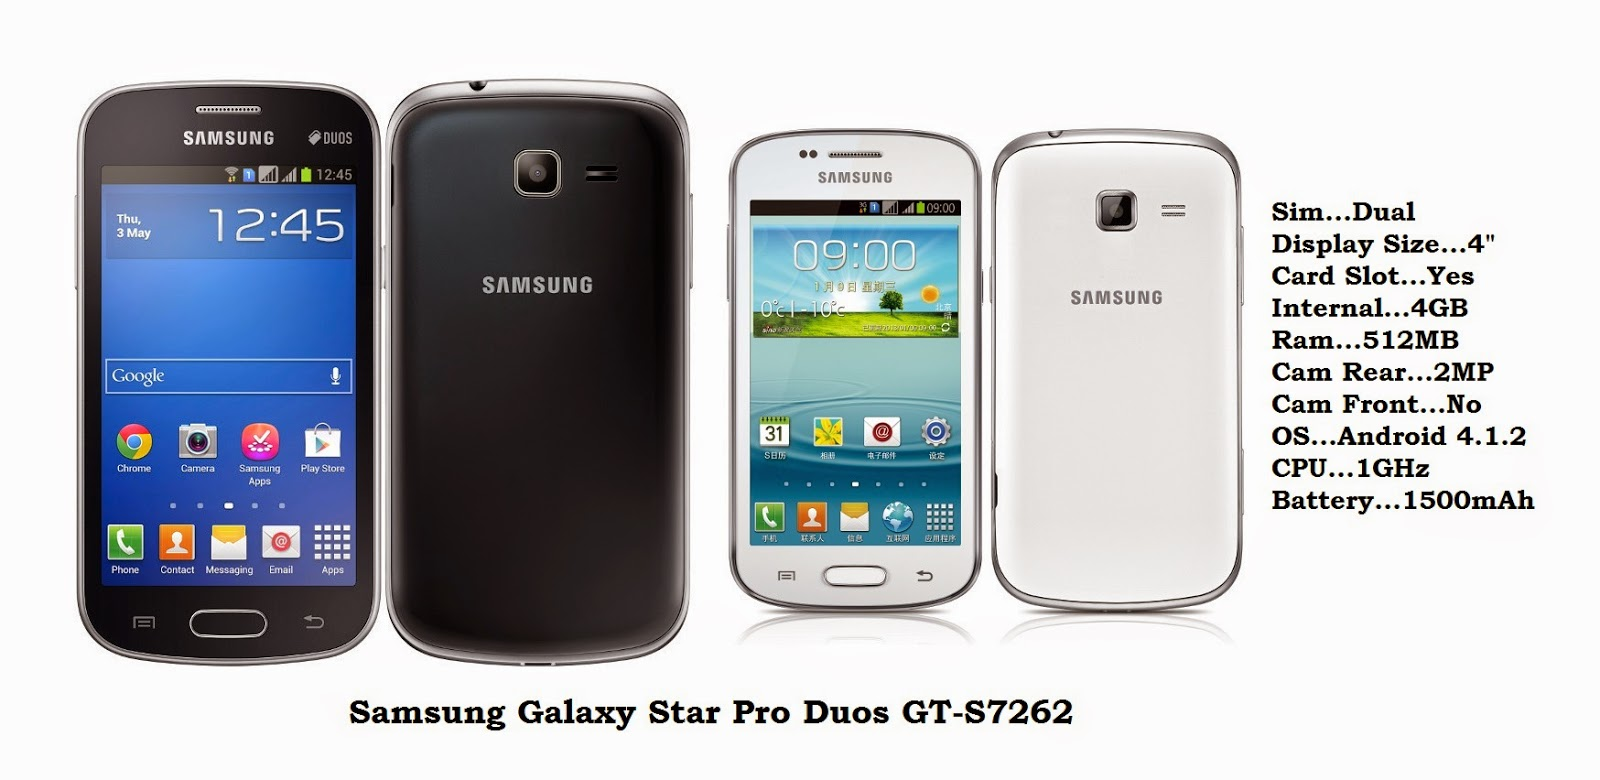 harga samsung galaxy star duos - photo #11